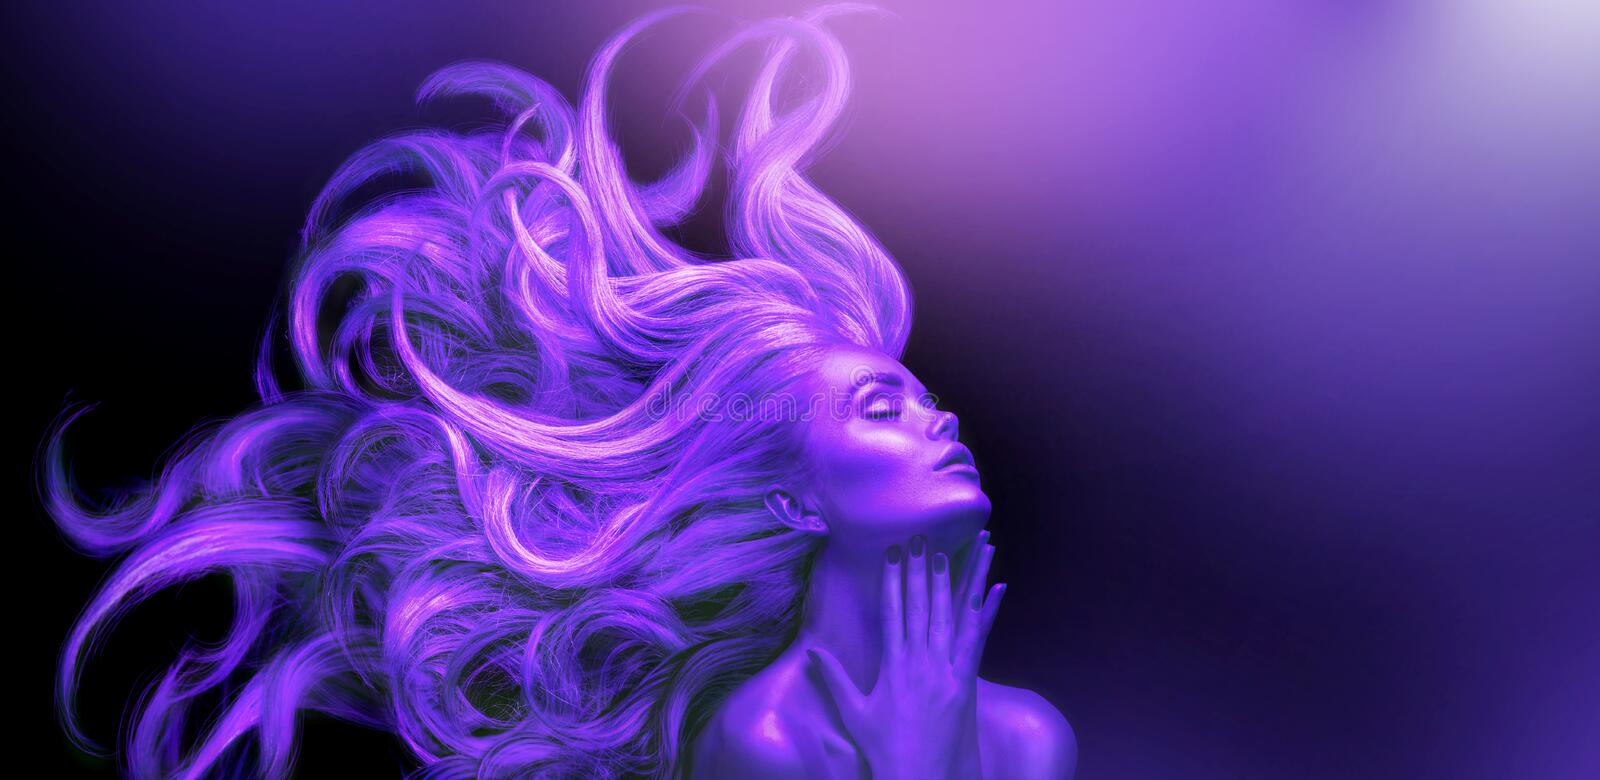 Neon Woman. Beauty fashion model girl with Long hair on black background in UV lights. Violet glowing skin and fluttering hair. Ultraviolet Dancing girl, art royalty free stock photography